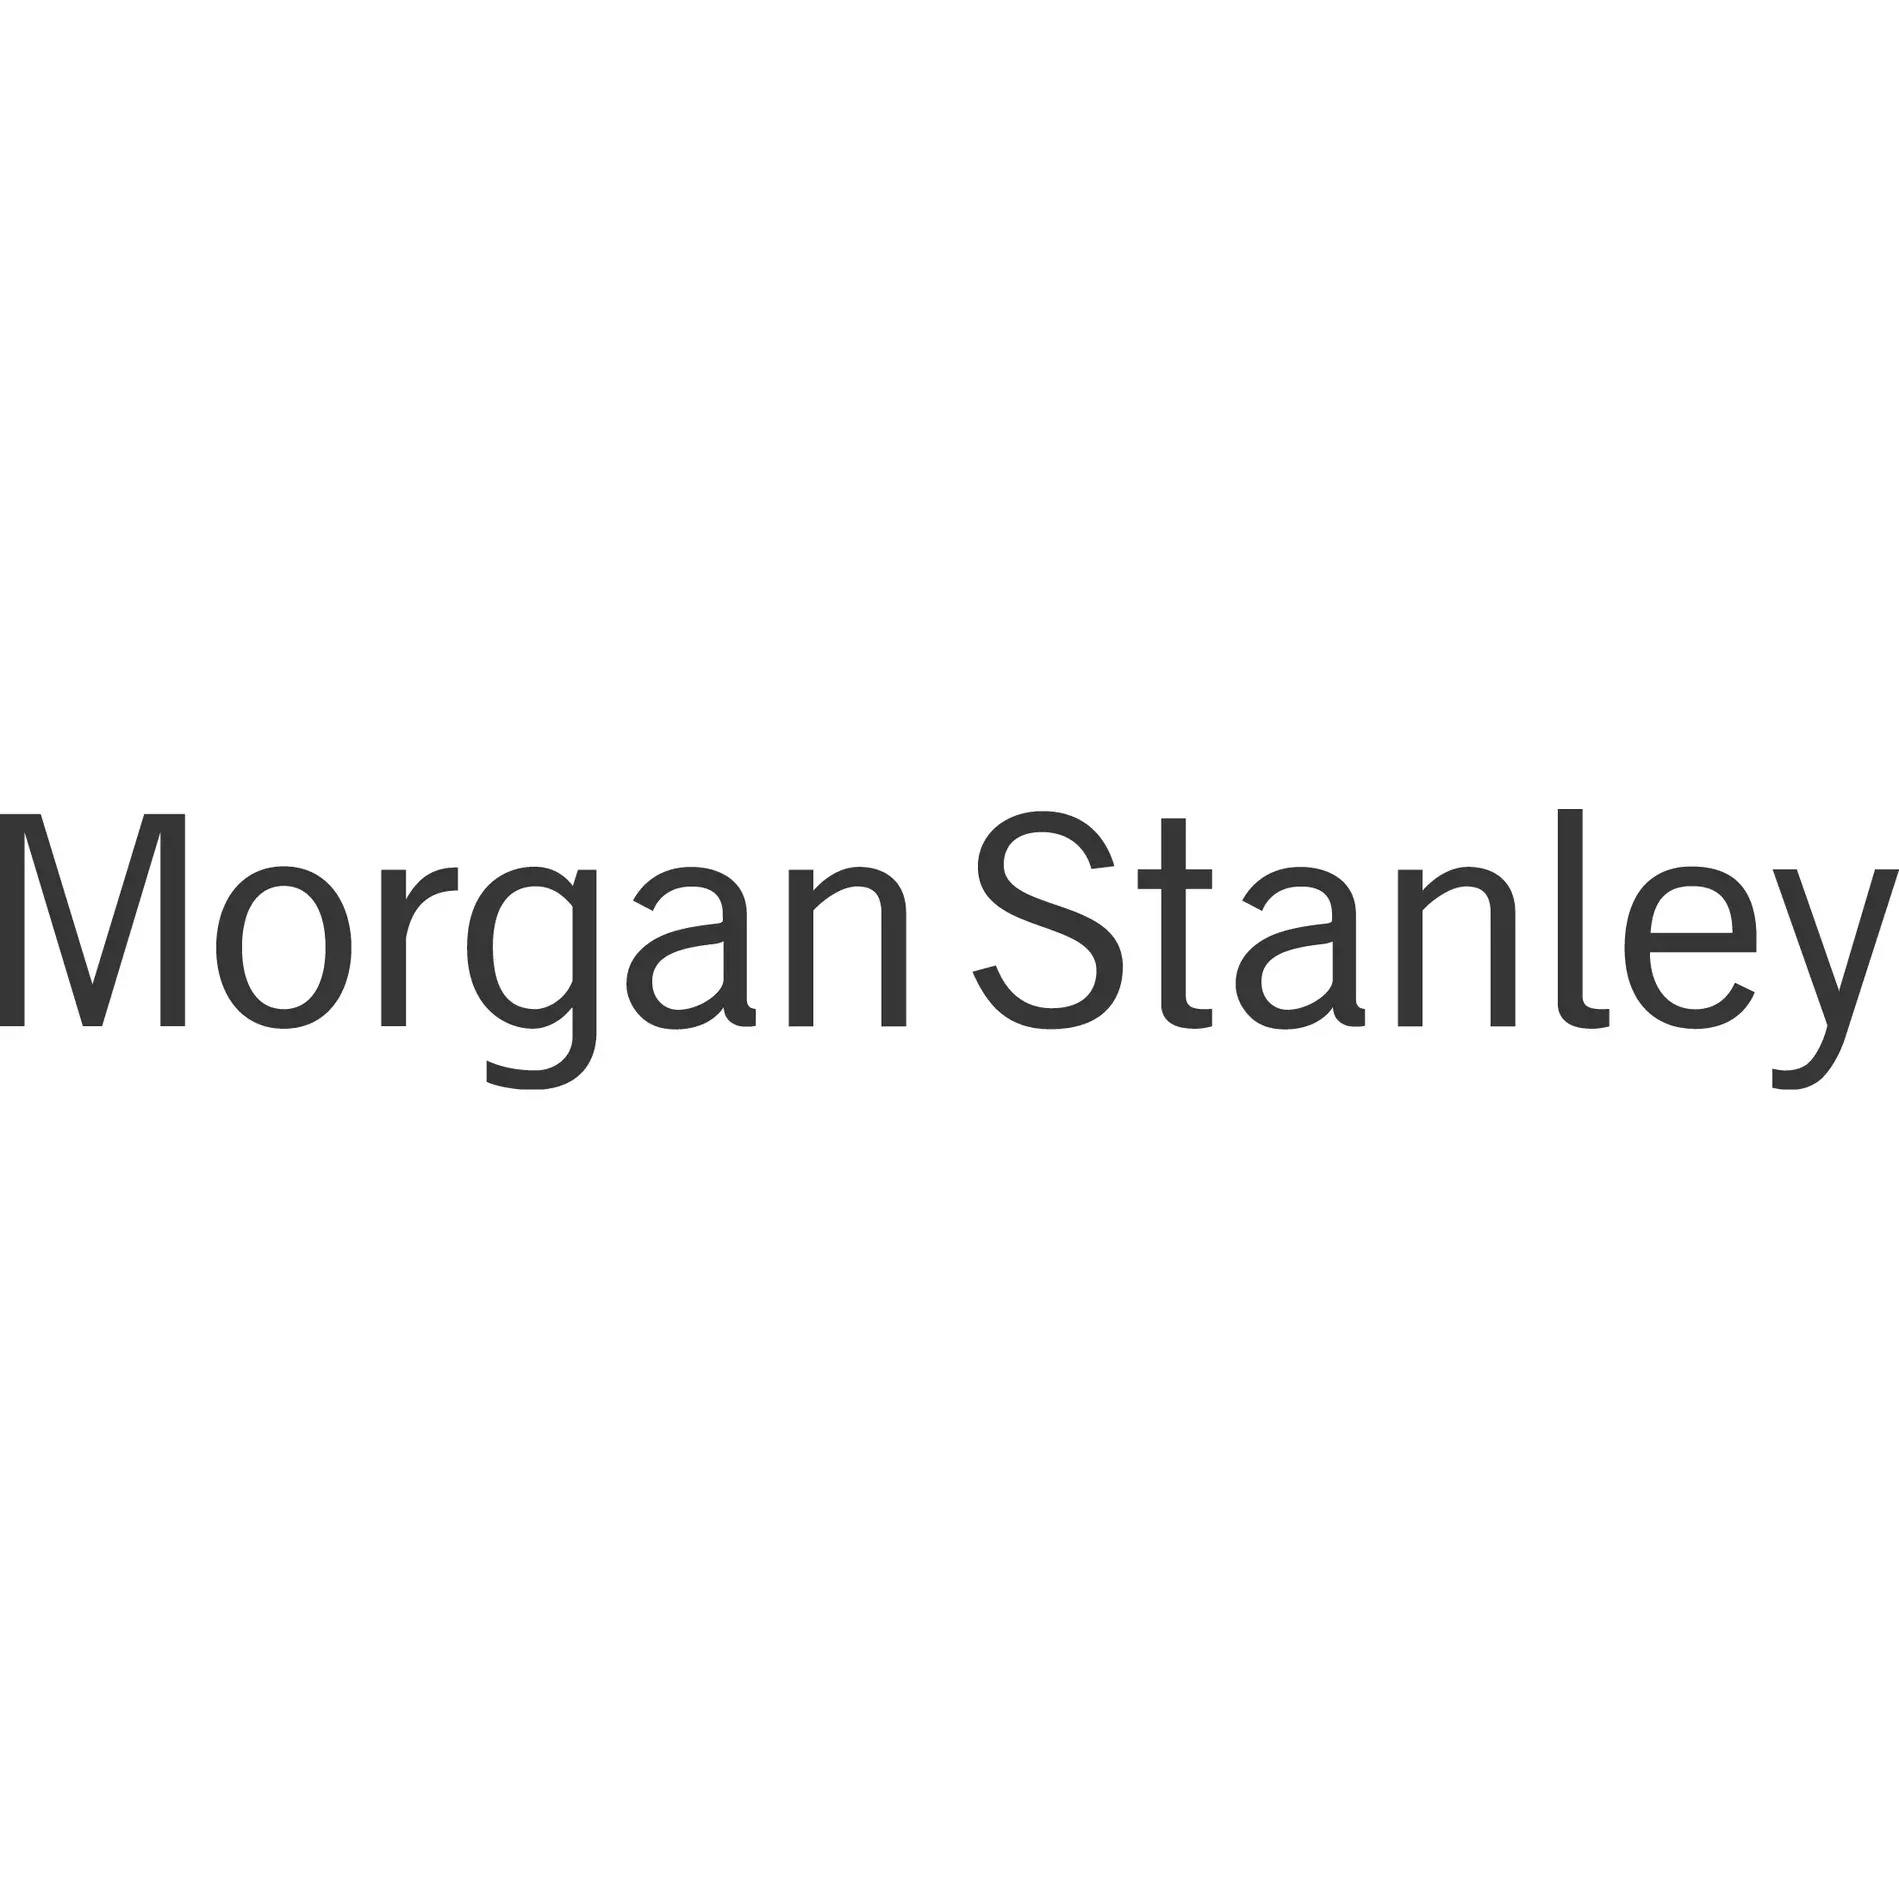 Thomas Perrone - Morgan Stanley